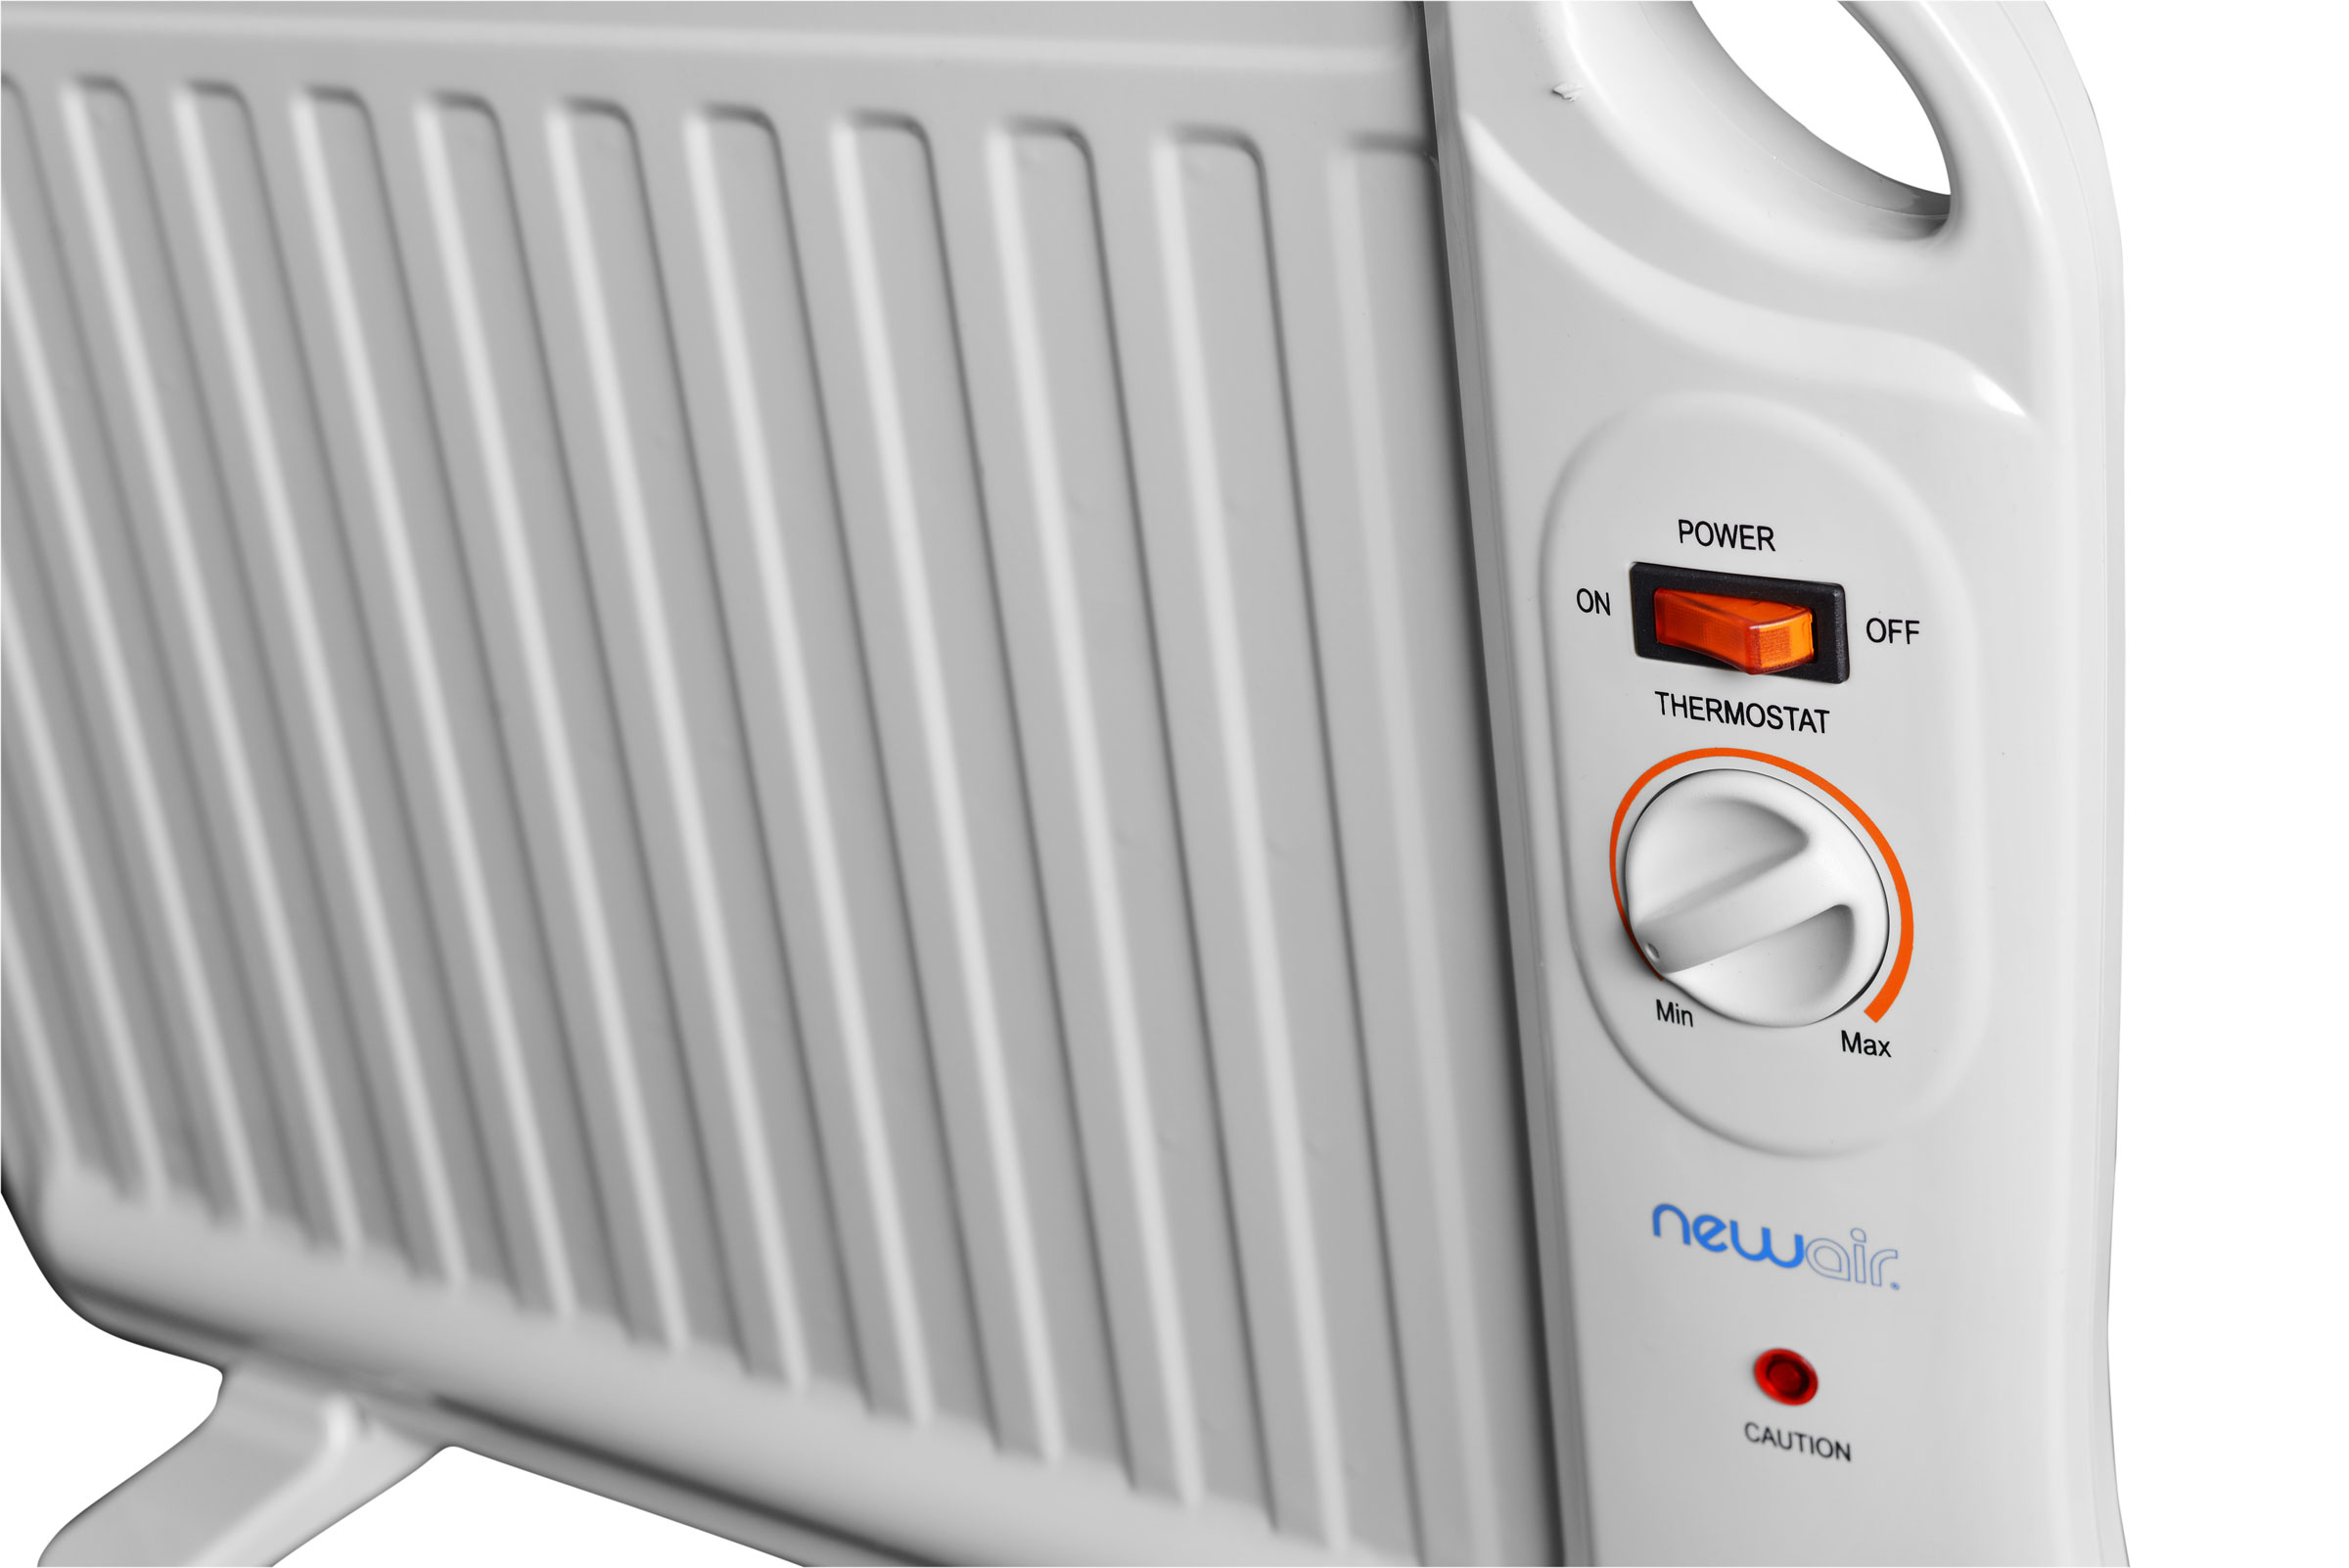 NewAir AH-400 Portable Oil Filled Space Heater